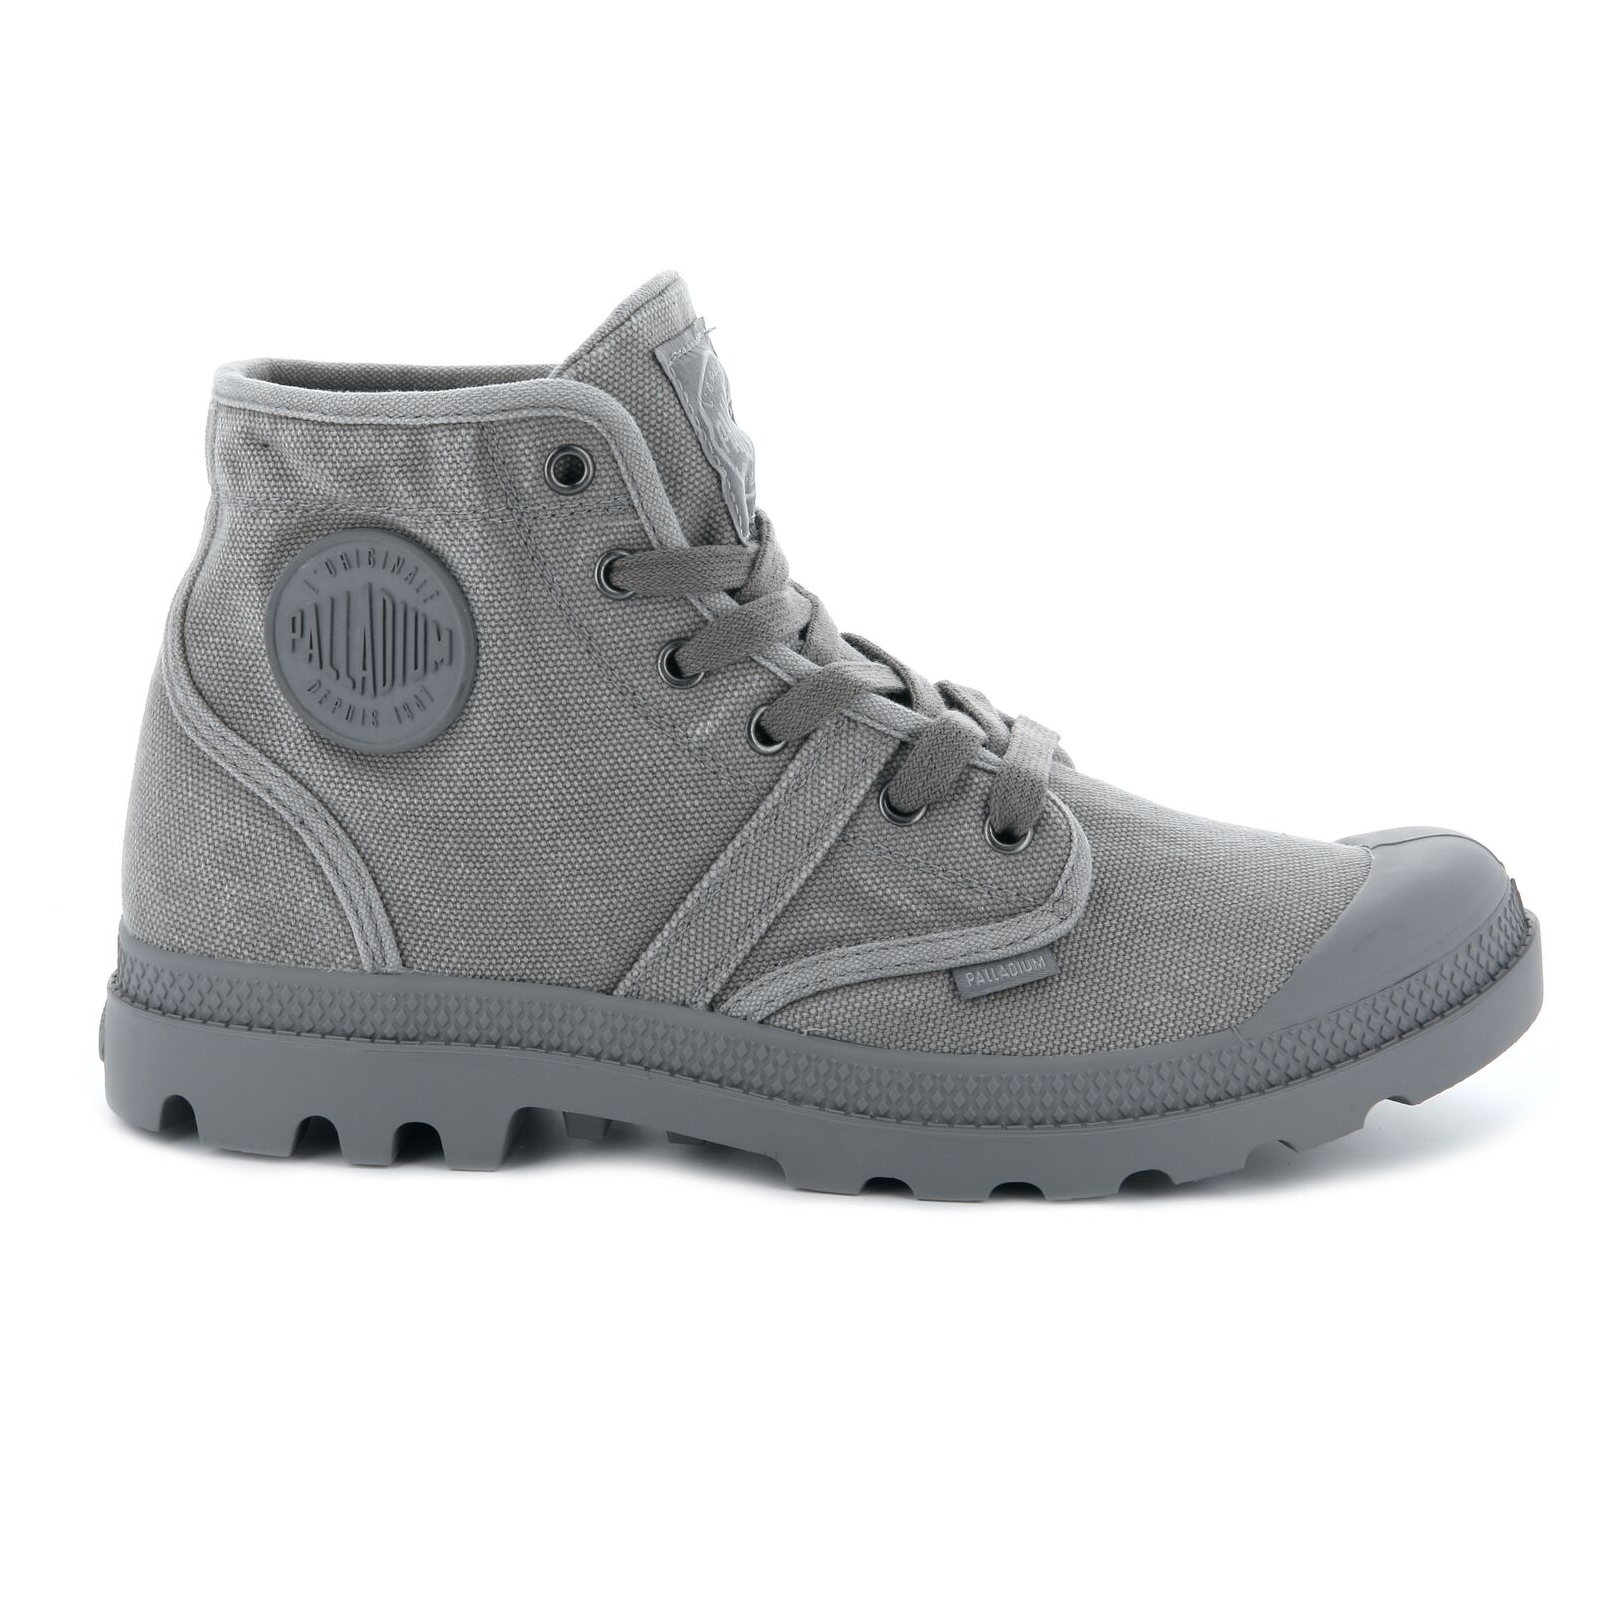 Palladium-Mens-Shoe-Pallabrouse-New-Designer-Walking-High-Top-Canvas-Ankle-Boots thumbnail 18